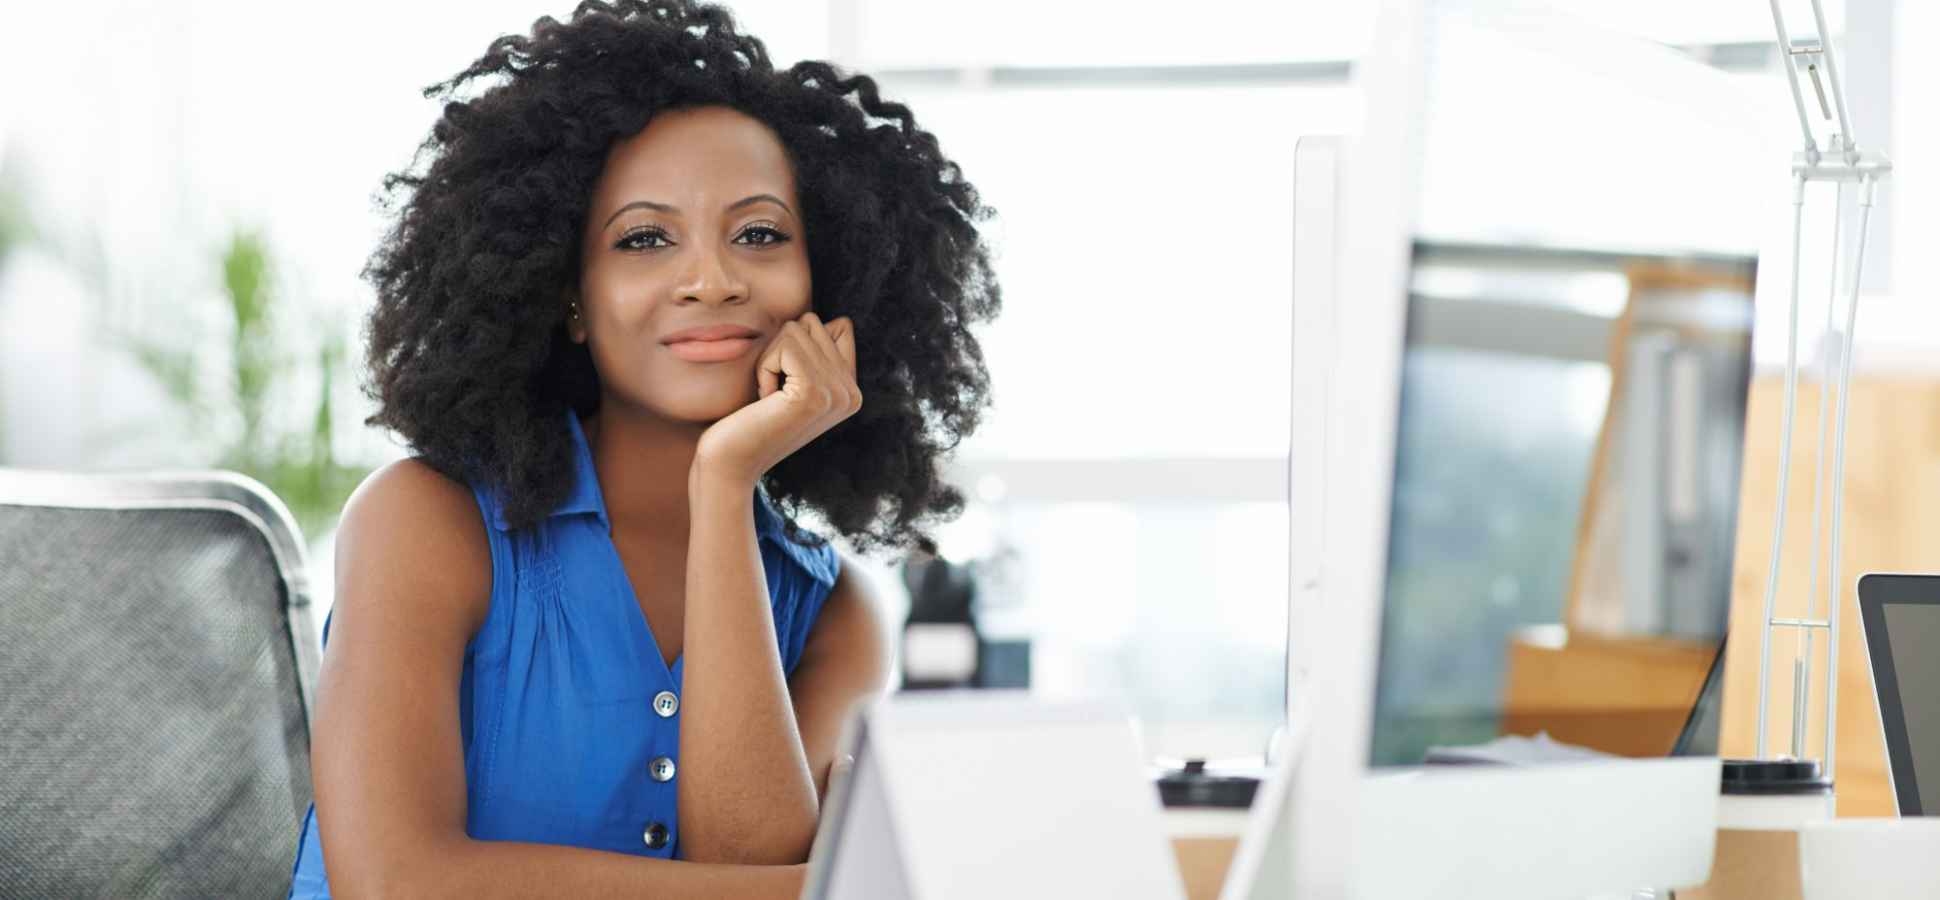 9 Qualities That Make Bosses Not Only Great, but Unforgettable